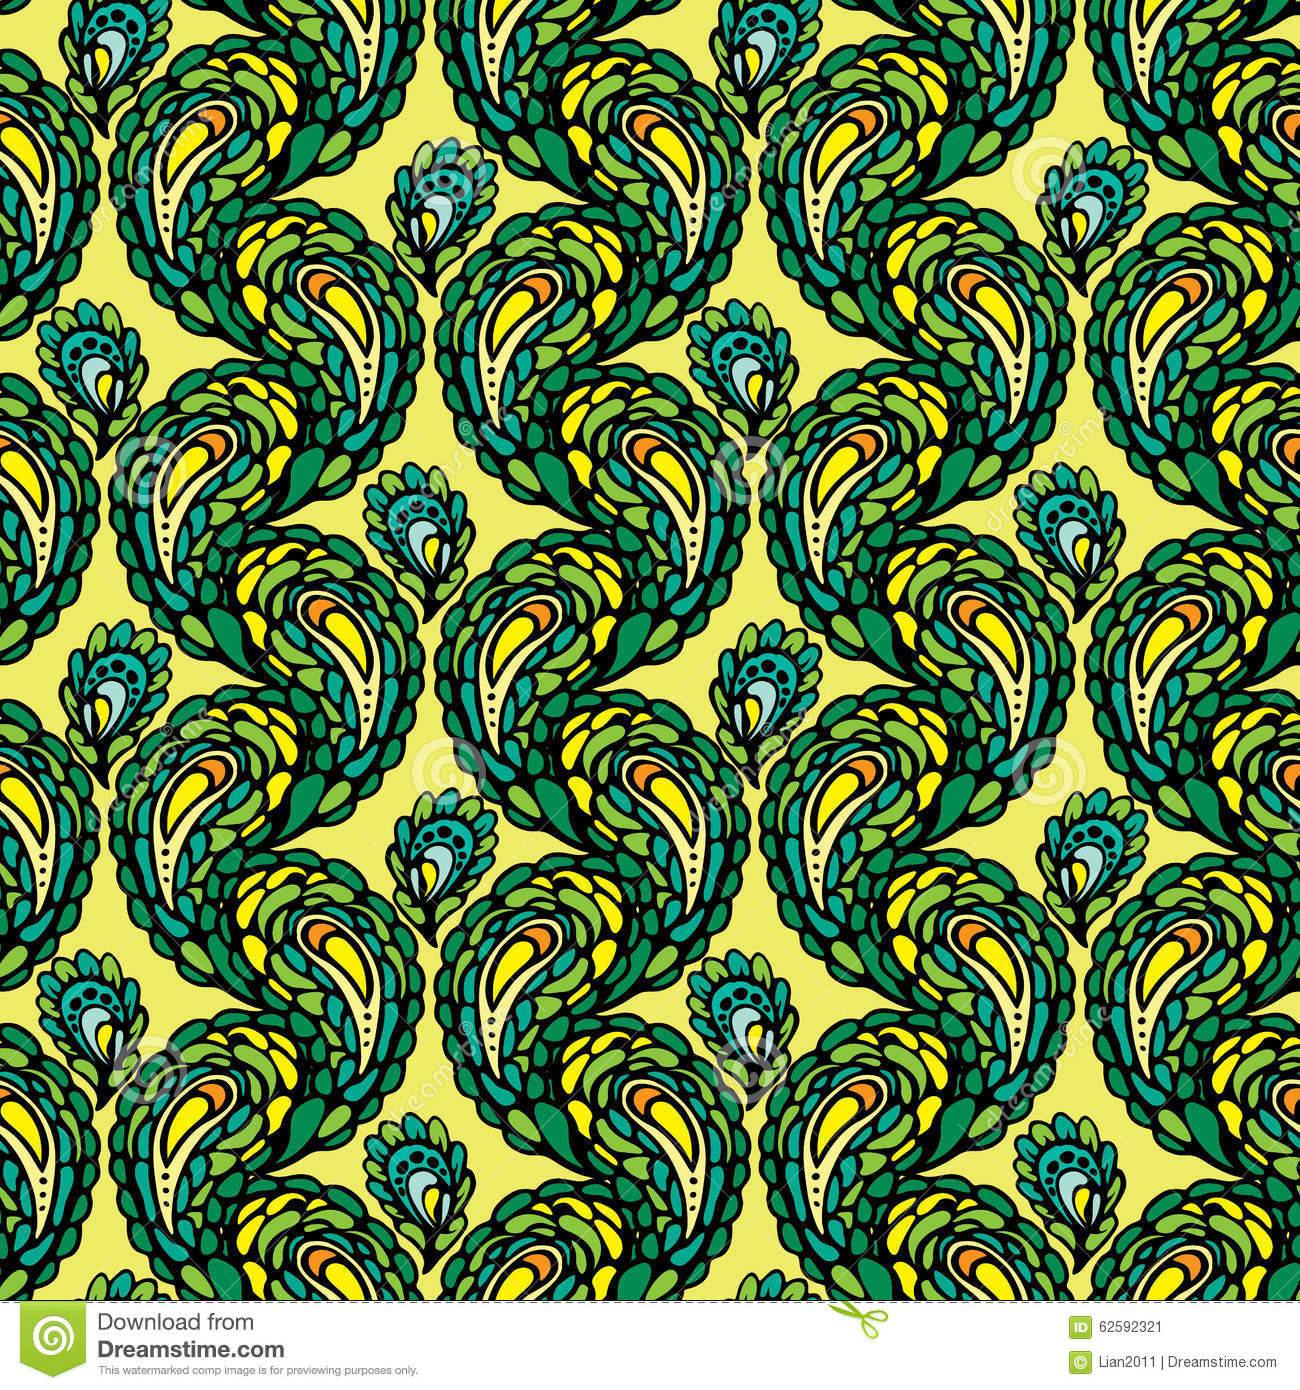 vector abstract peacock seamless - photo #22